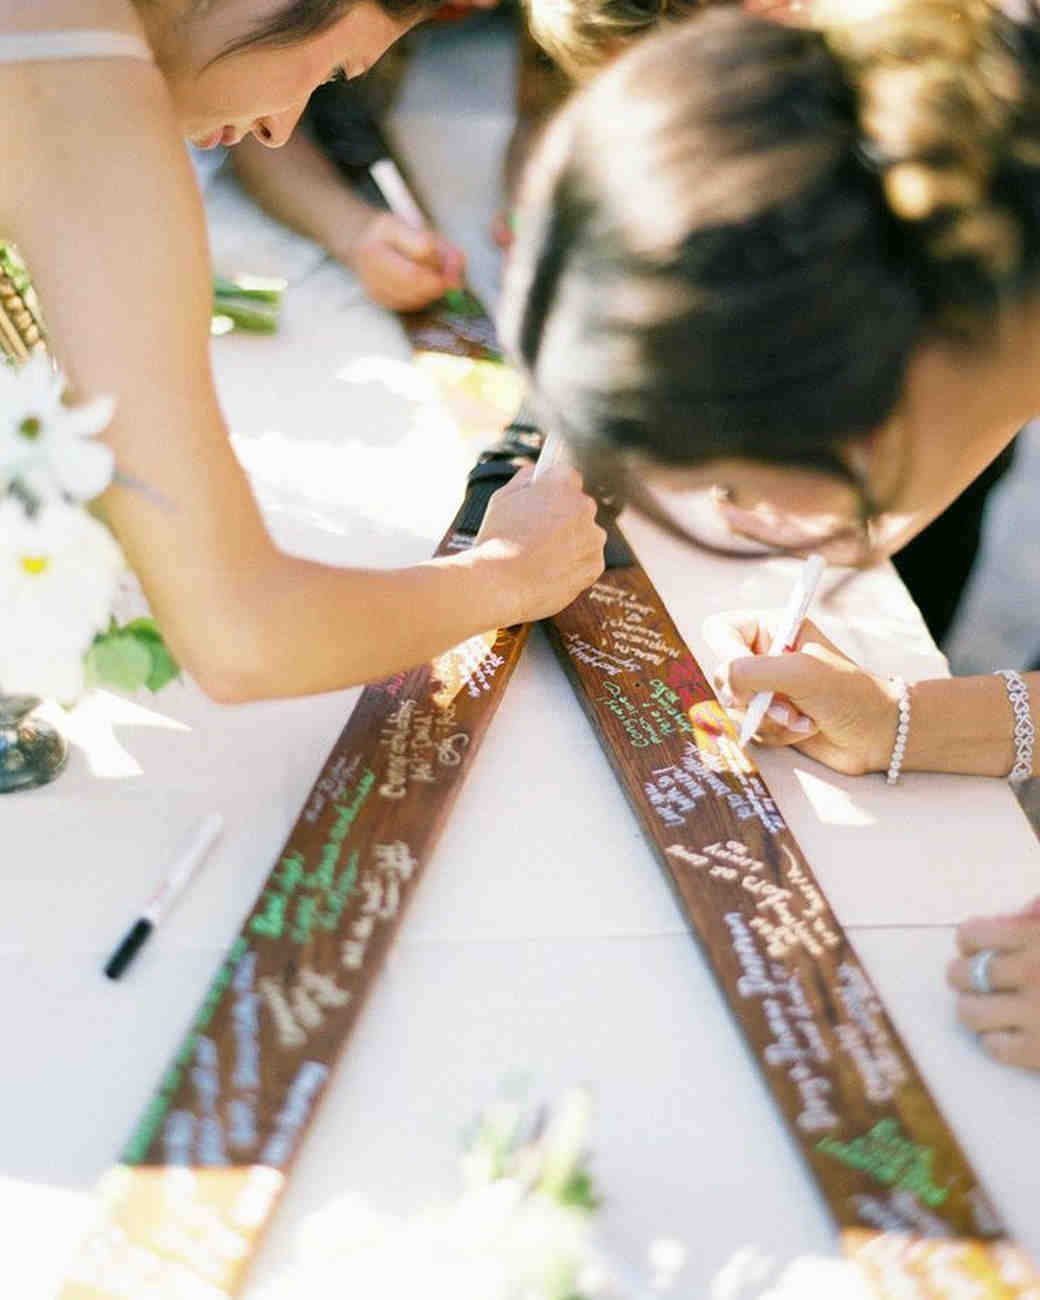 Ideas For A Fun Wedding: Unique Wedding Guest Book Ideas That Aren't Actually Books